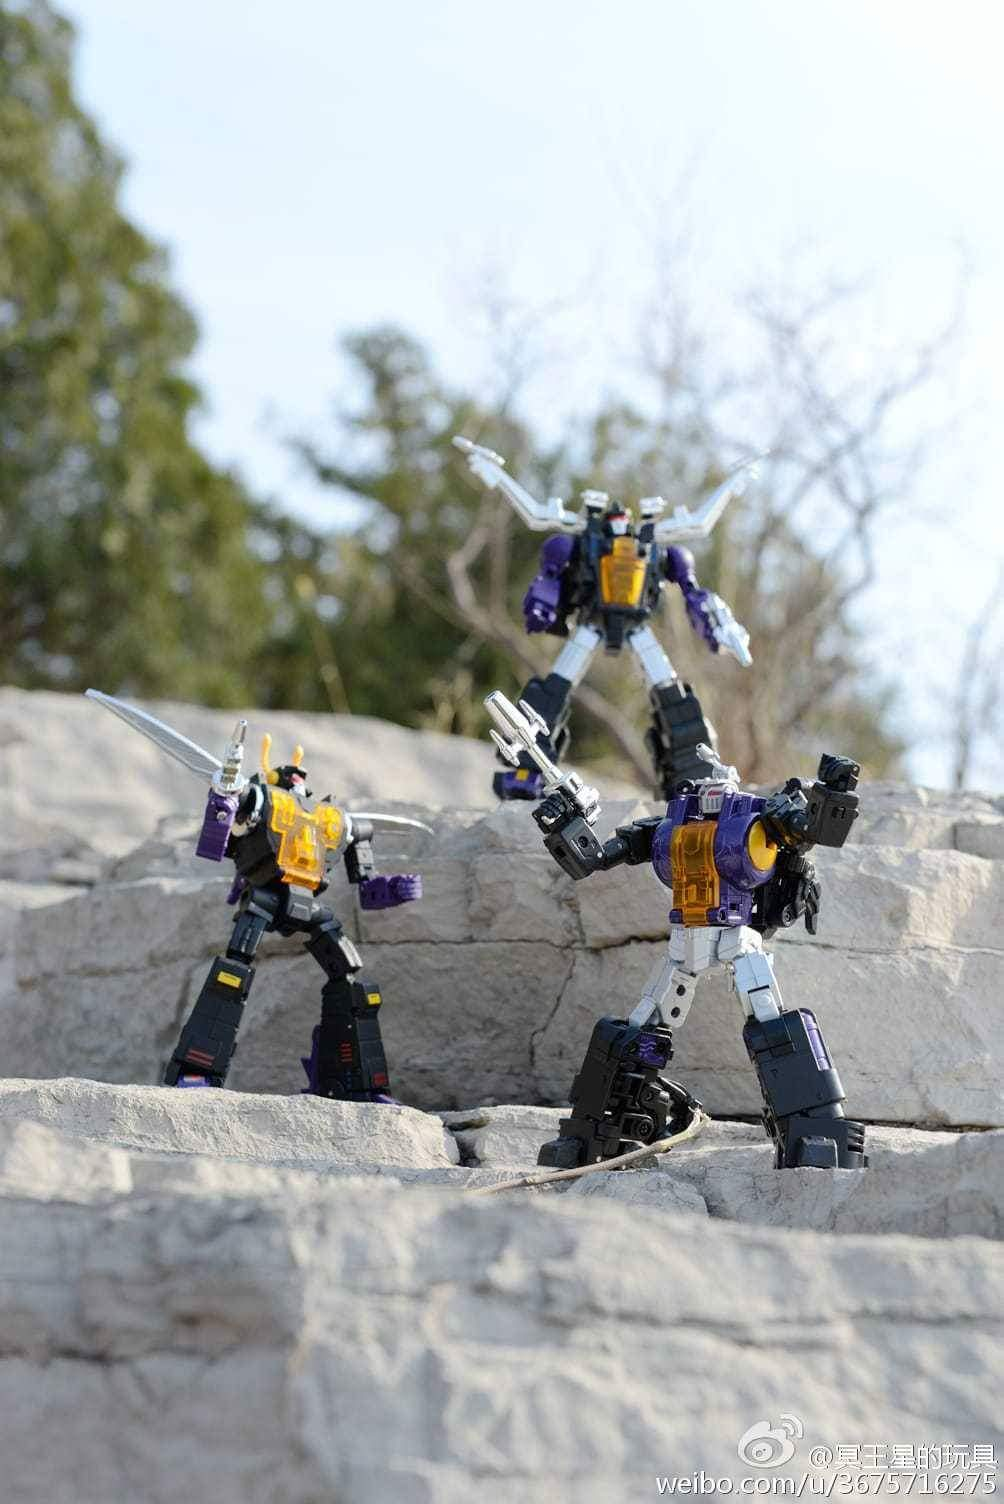 [Fanstoys] Produit Tiers - Jouet FT-12 Grenadier / FT-13 Mercenary / FT-14 Forager - aka Insecticons - Page 3 I7SNt0jh